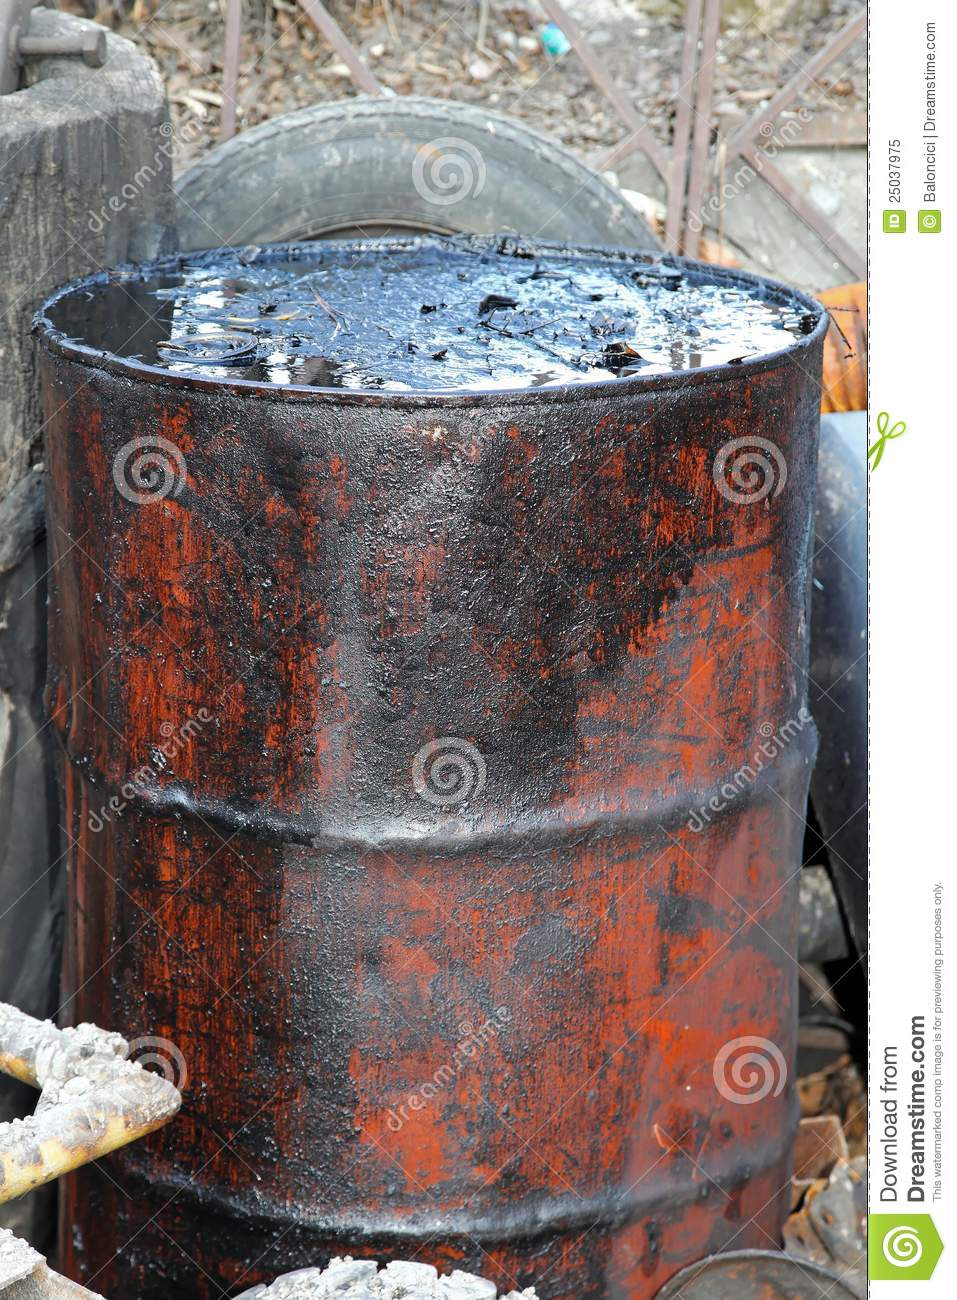 6 7 Diesel Fuel Filters Oil Barrel Stock Image Image Of Illegal Petrol Fuel